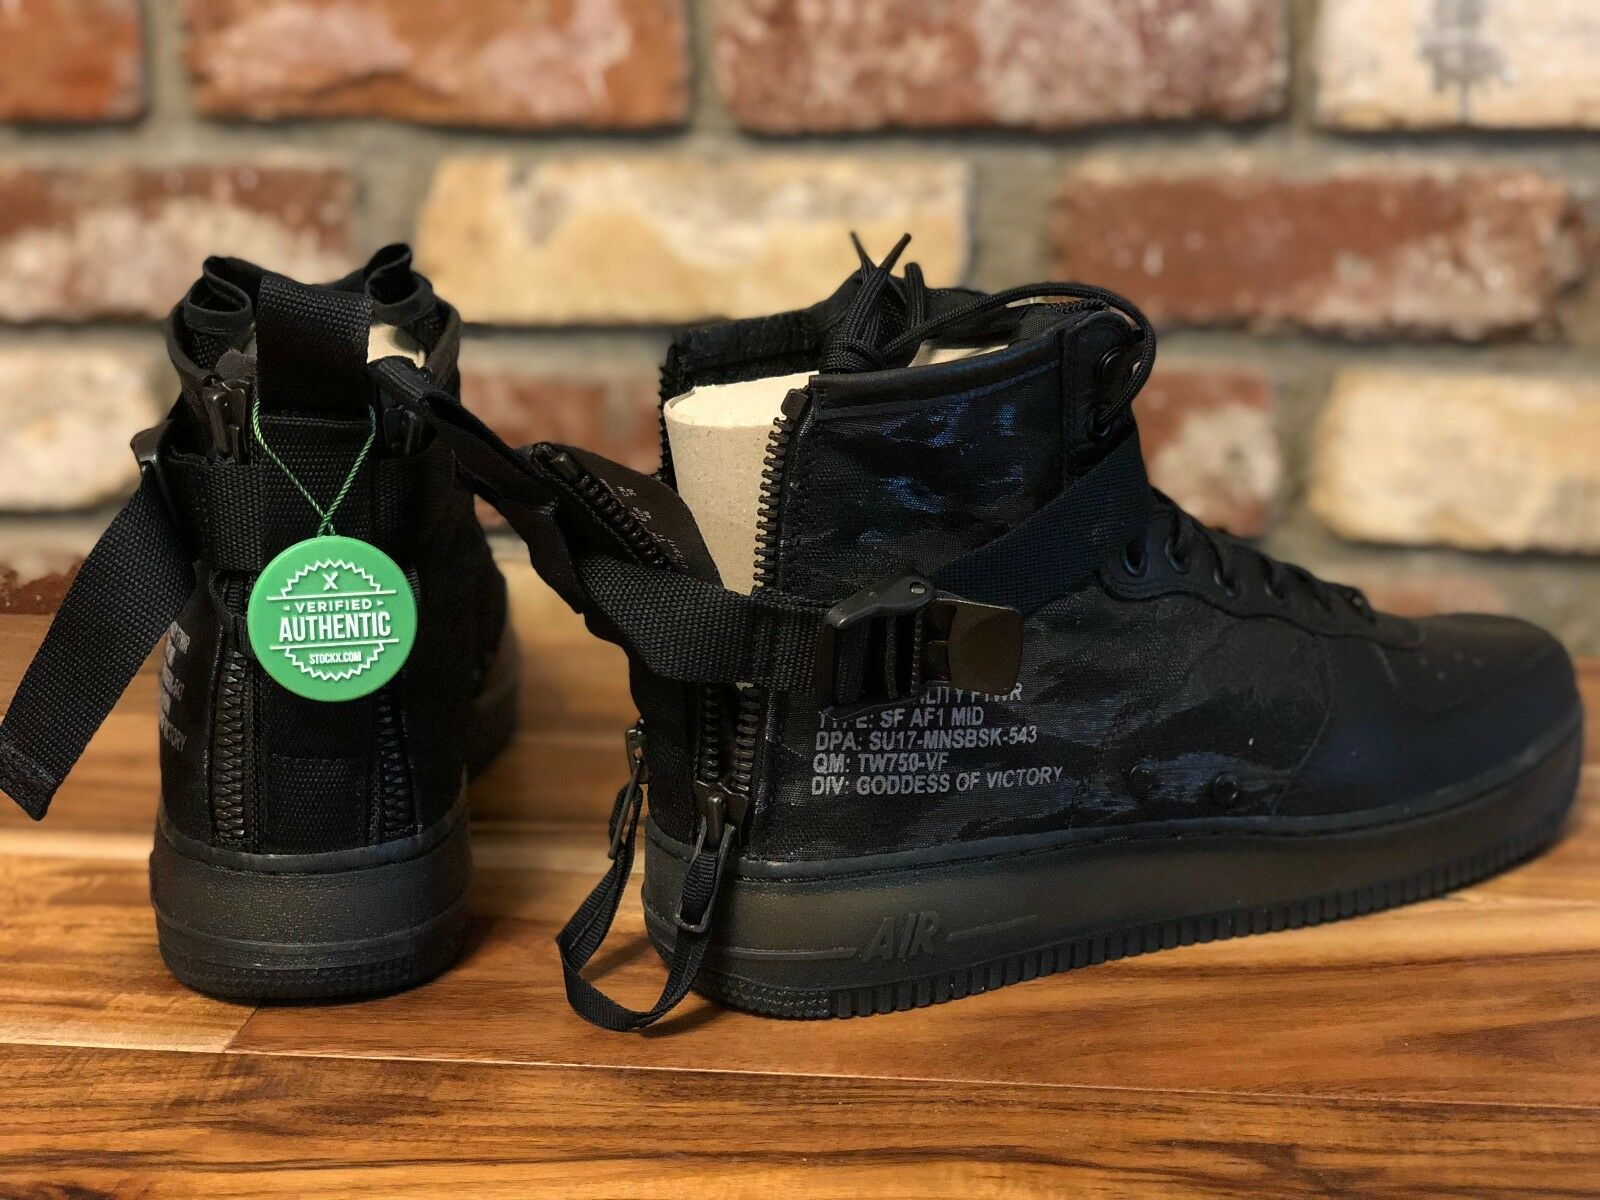 Nike SF Air Force 1 Mid Black Cargo Khaki DS Men's Size 12